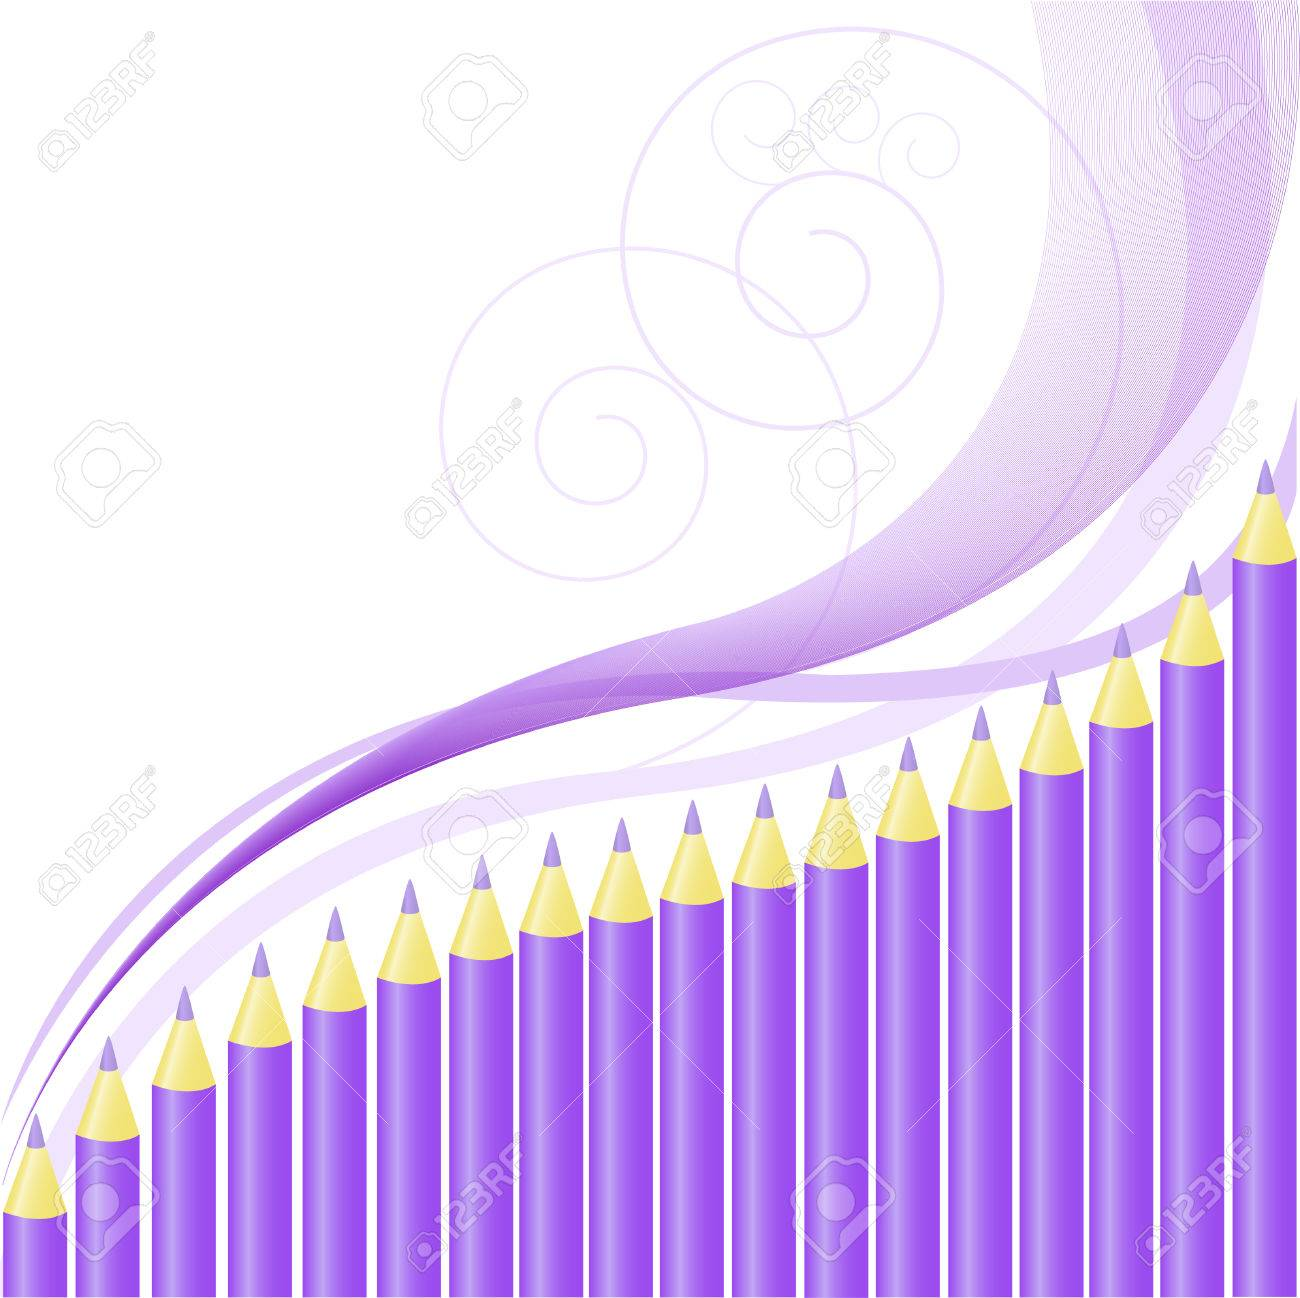 .asymmetric background of purple pencils and wavy lines Stock Vector - 8925212